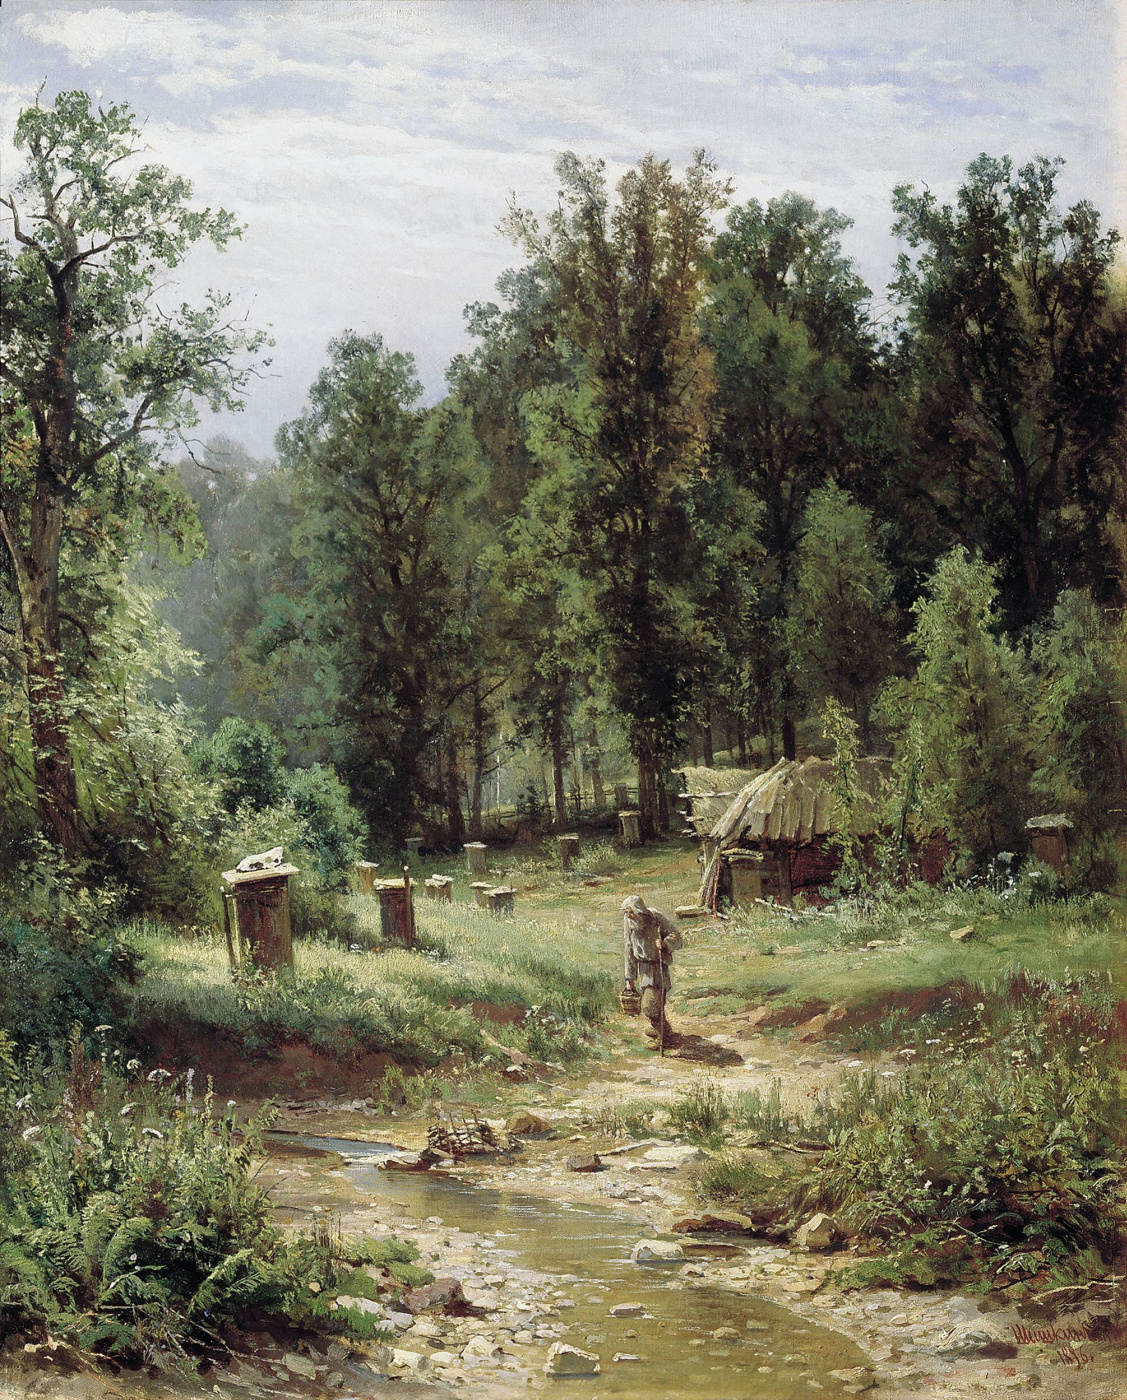 Ivan Ivanovich Shishkin. Apiary in a forest